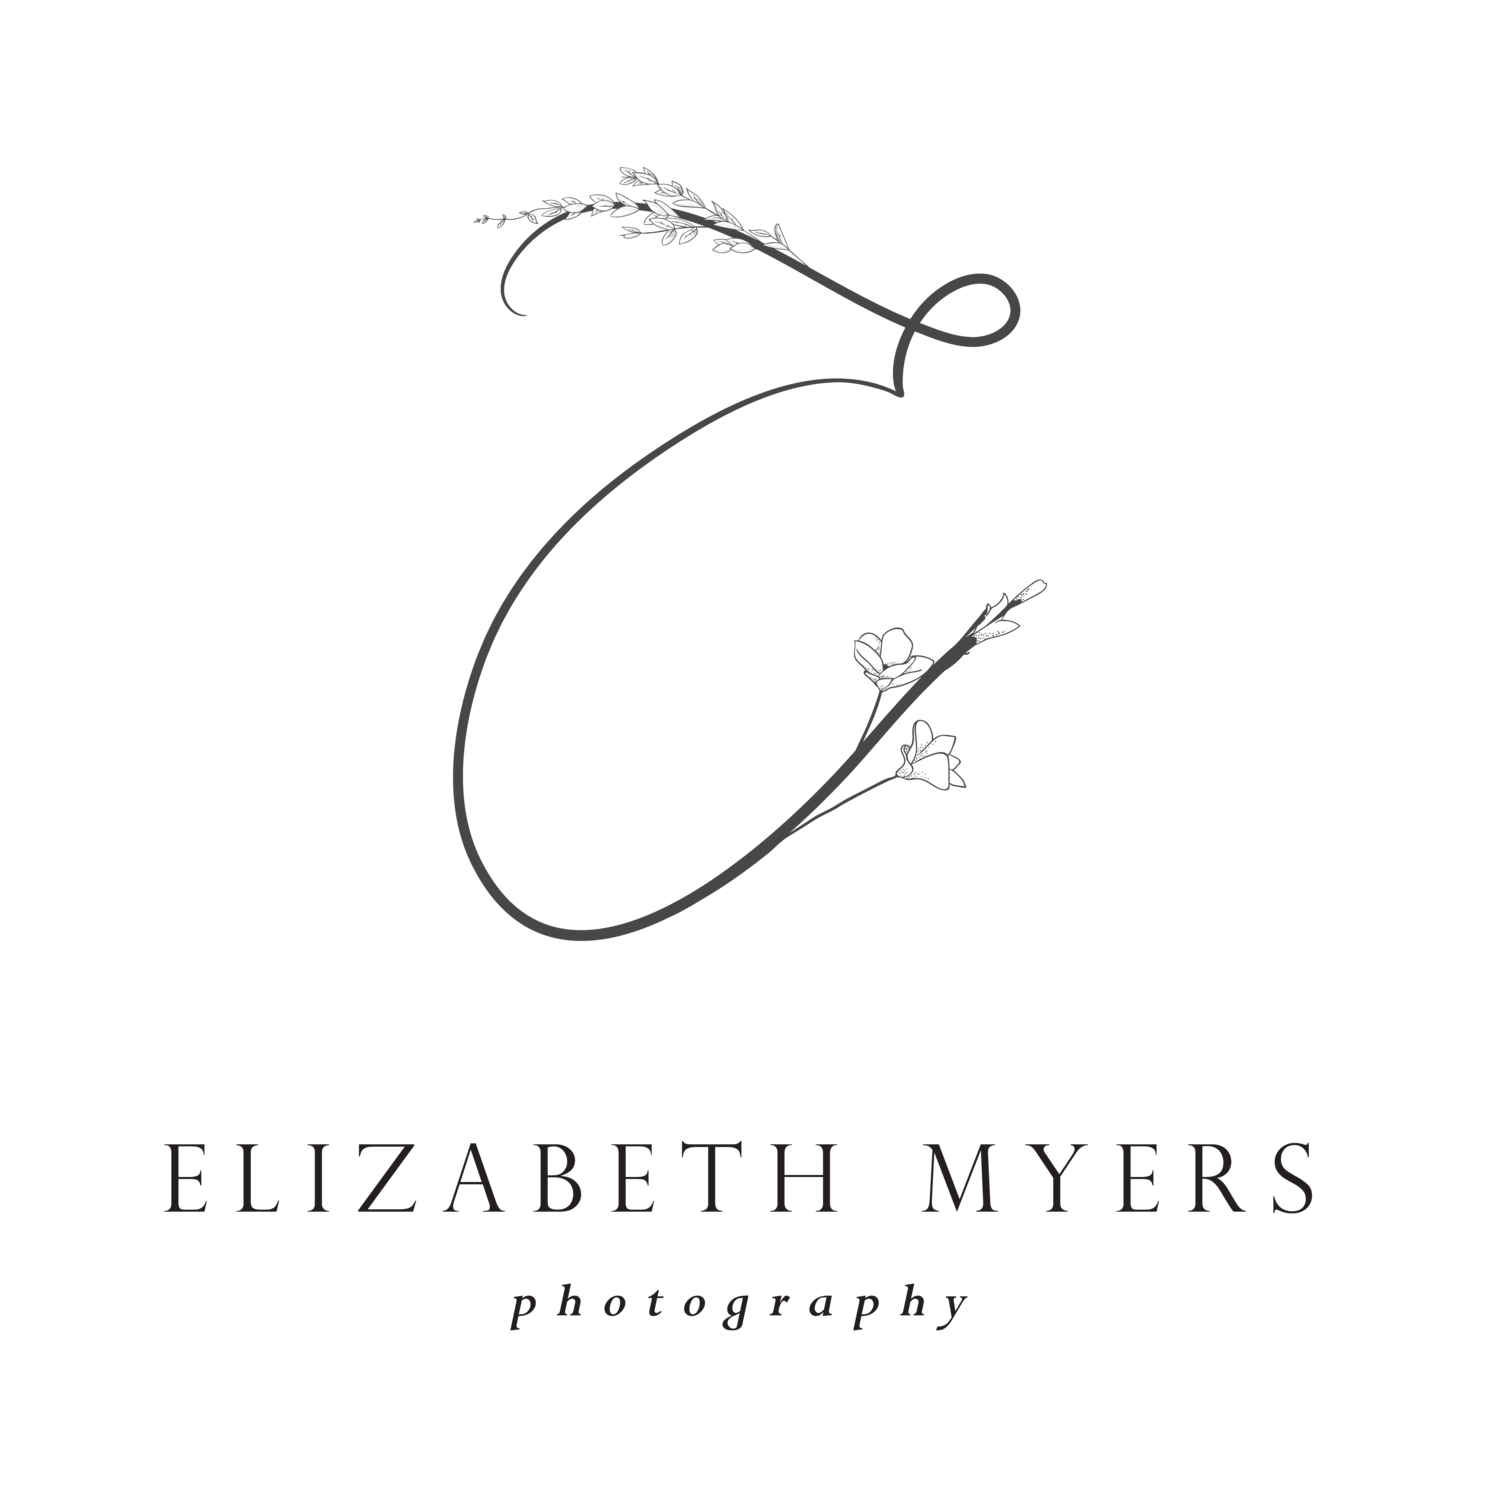 Elizabeth Myers Photography